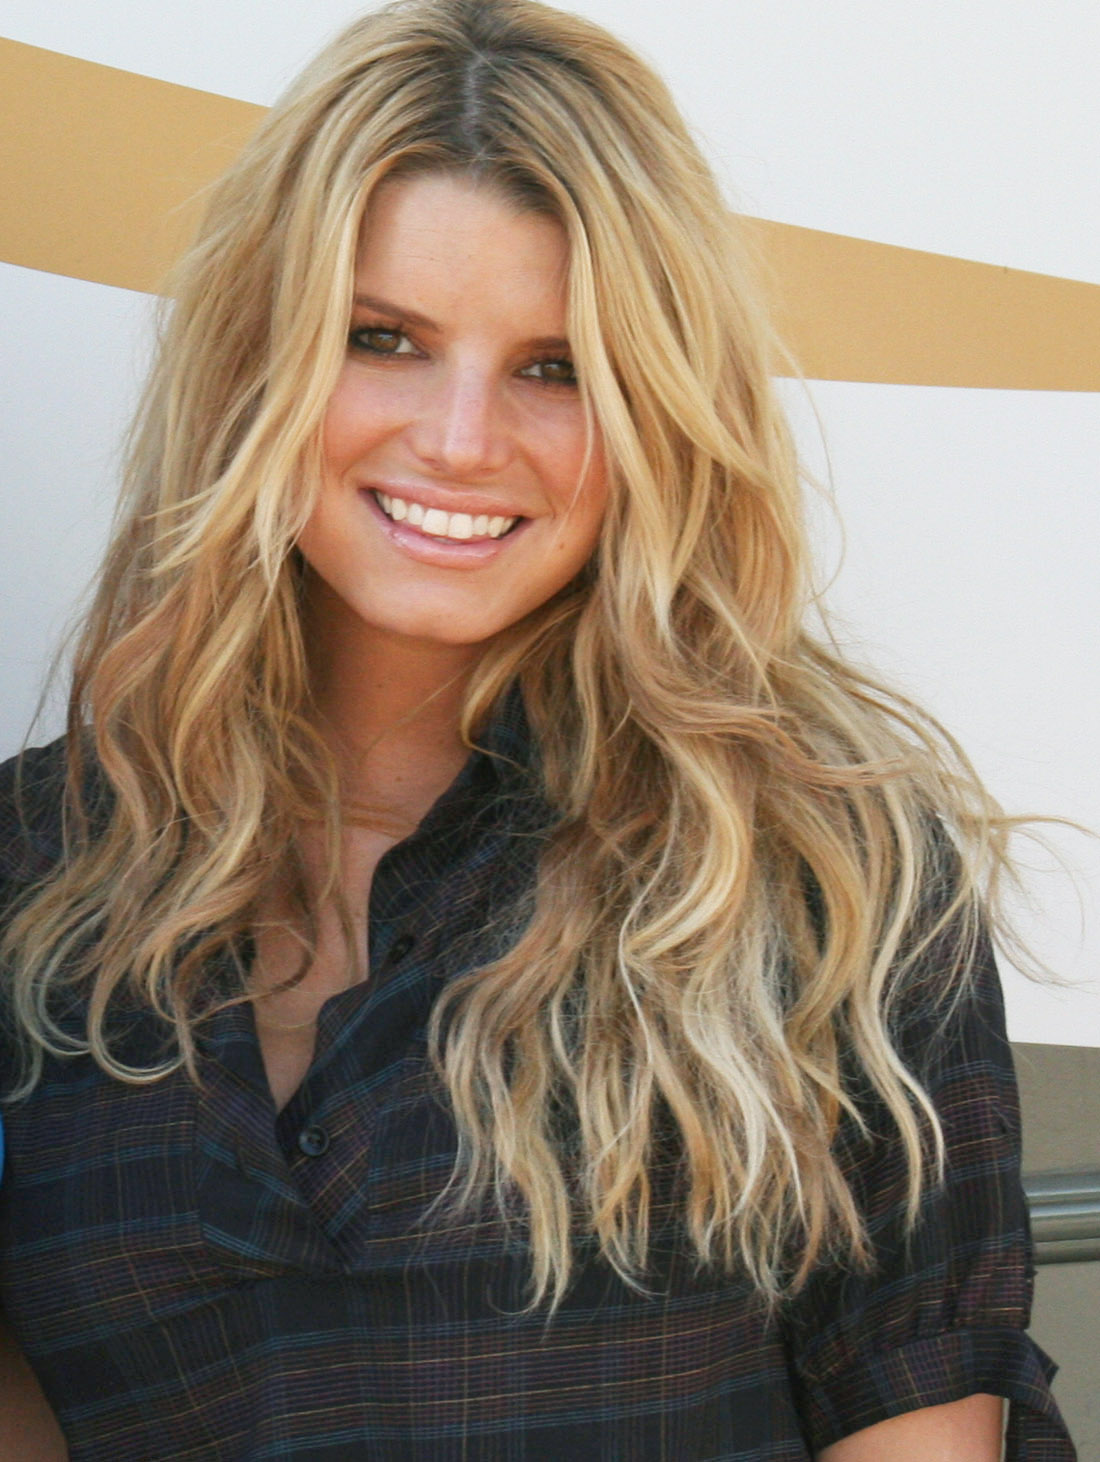 jessica simpson hair styles hair styles amp haircuts hairstyles tips 7678 | Jessica Simpson Hairstyle hairstyles junninho.blogspot.com Jessica Simpson Layered Hairstyle